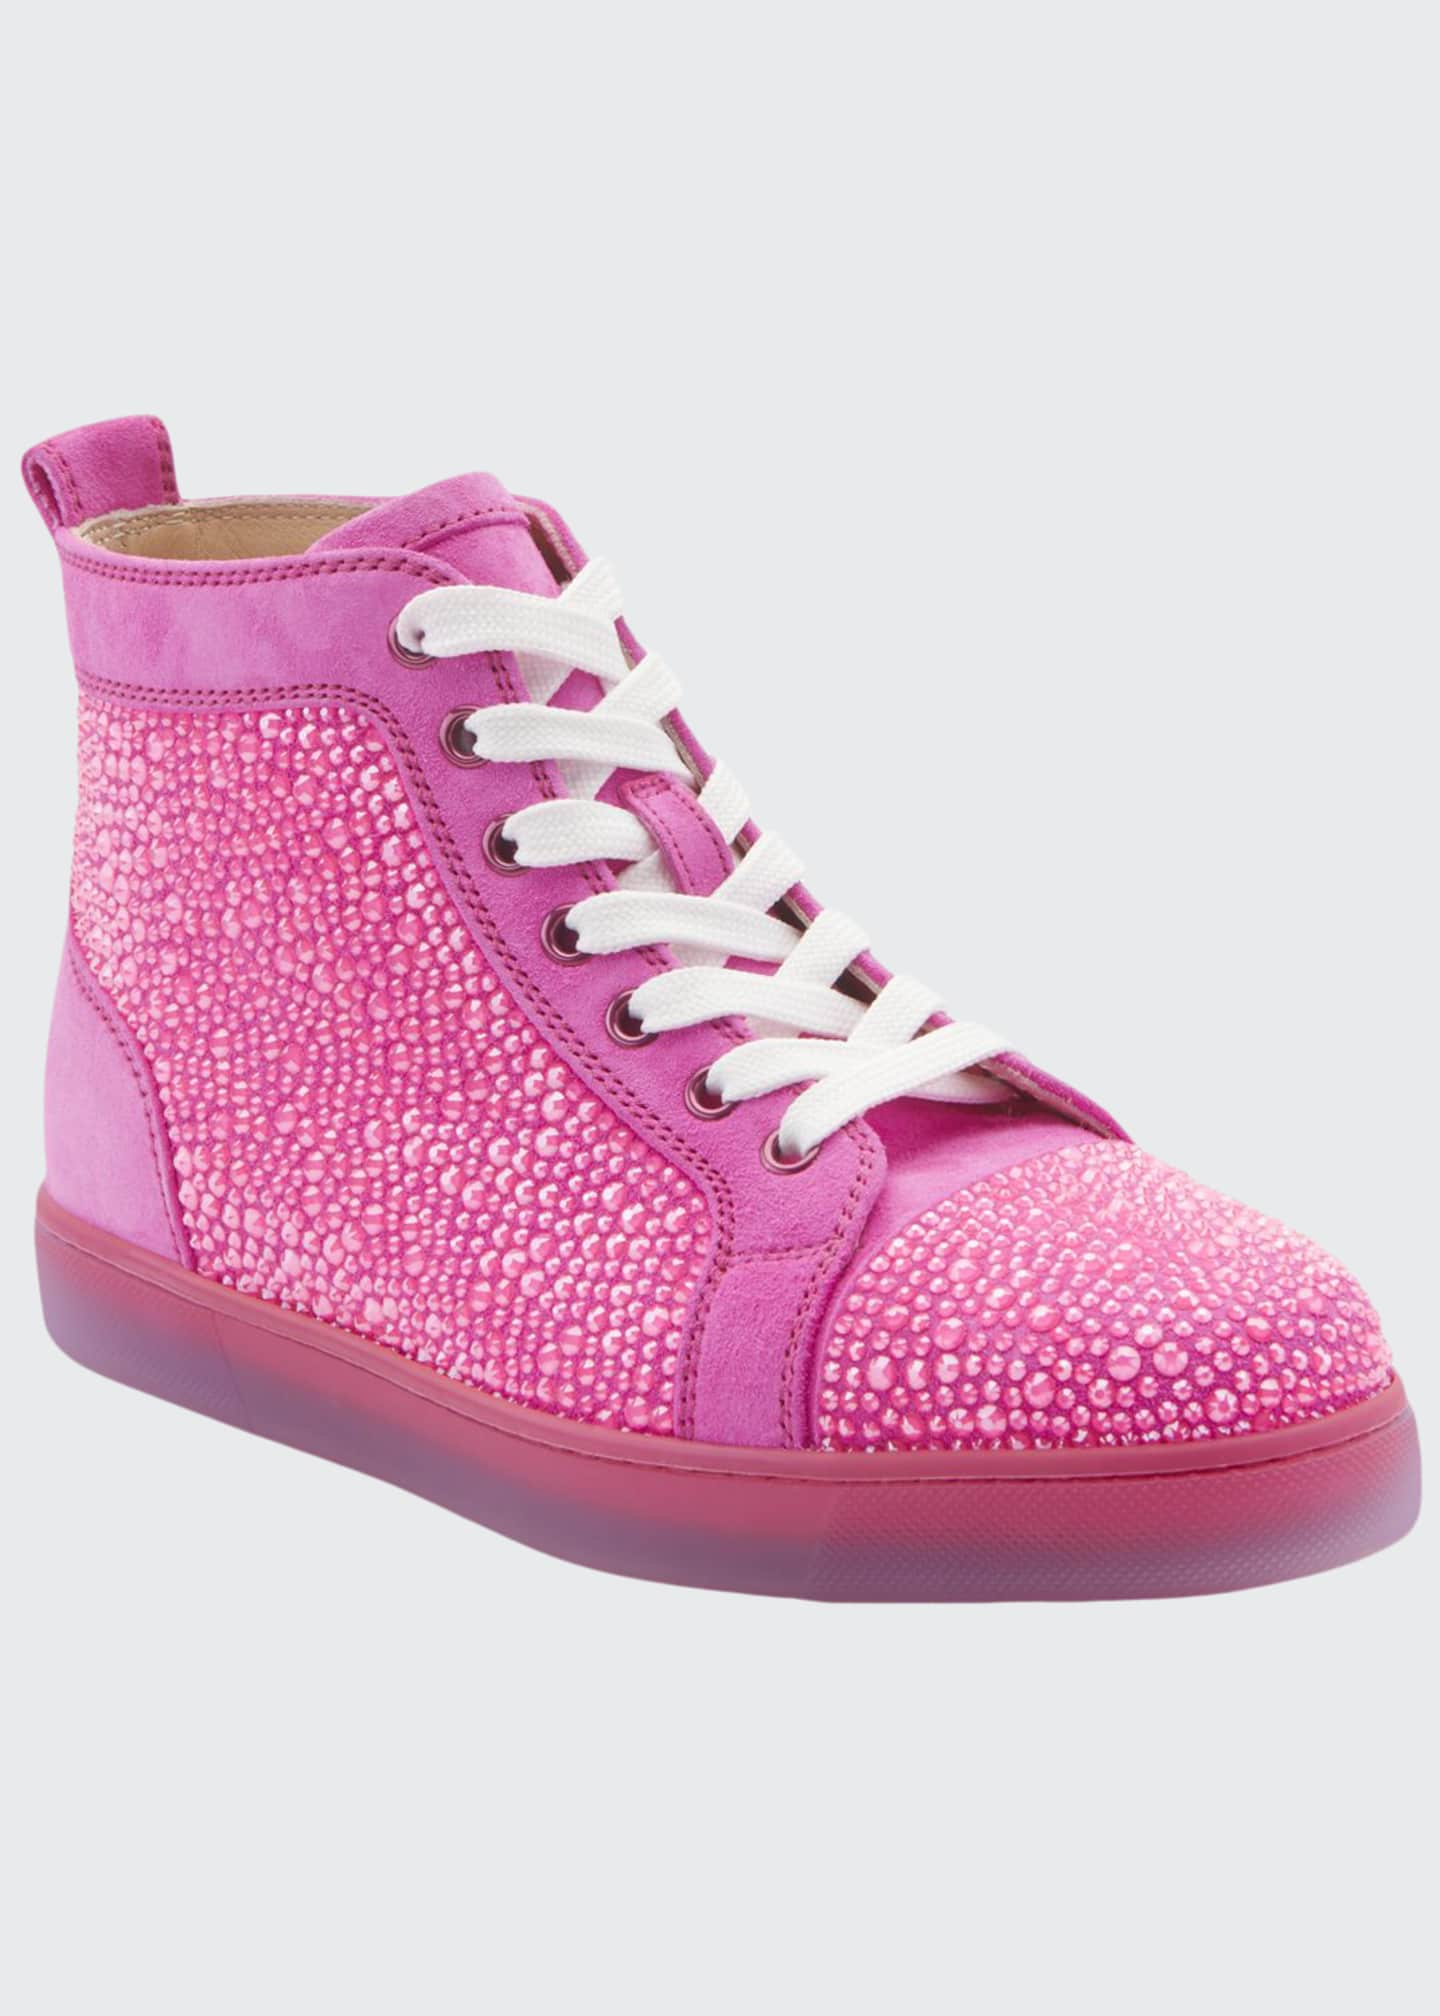 Christian Louboutin Louis Strass Red Sole Sneakers